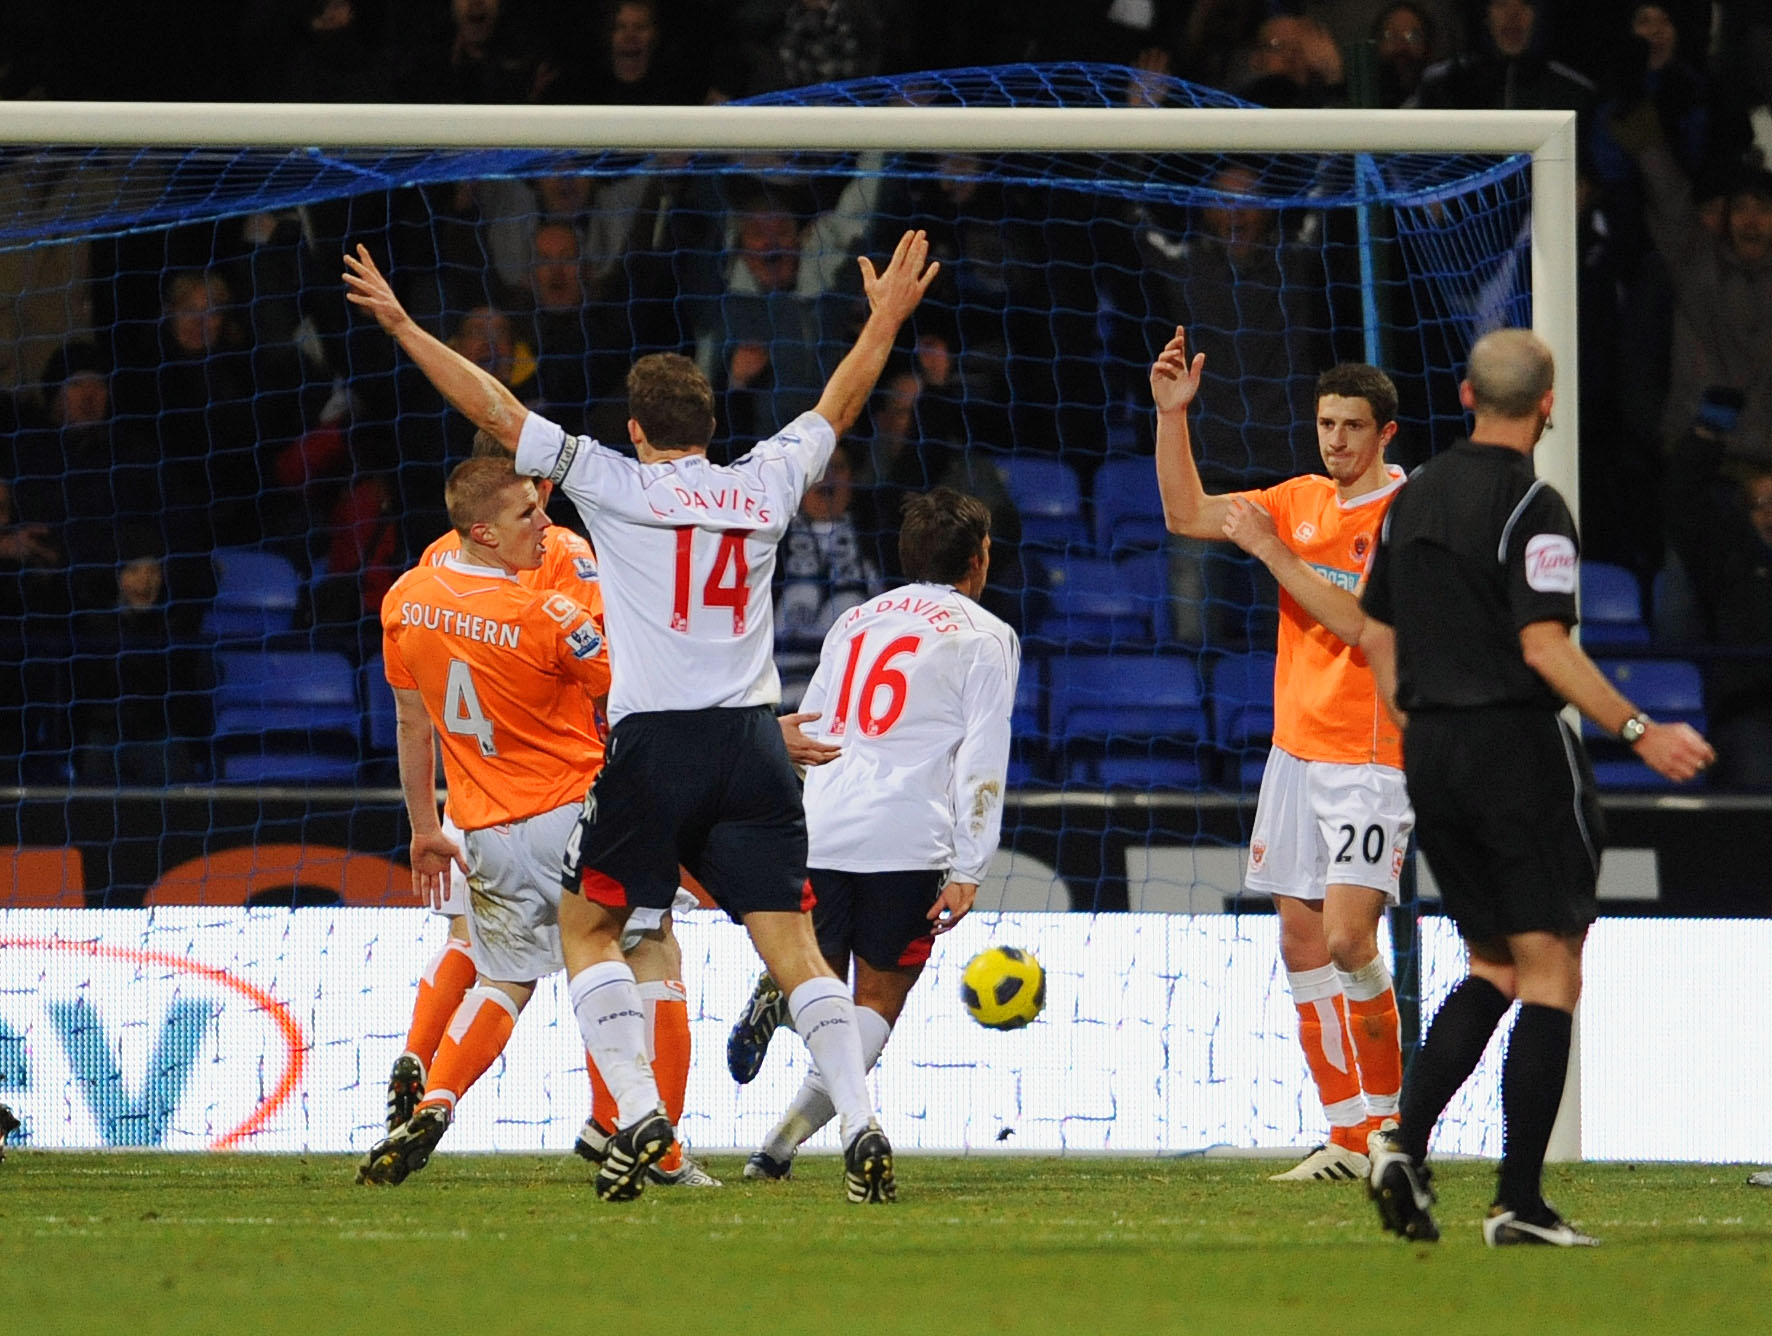 Bolton Wanderers v Blackpool - Premier League